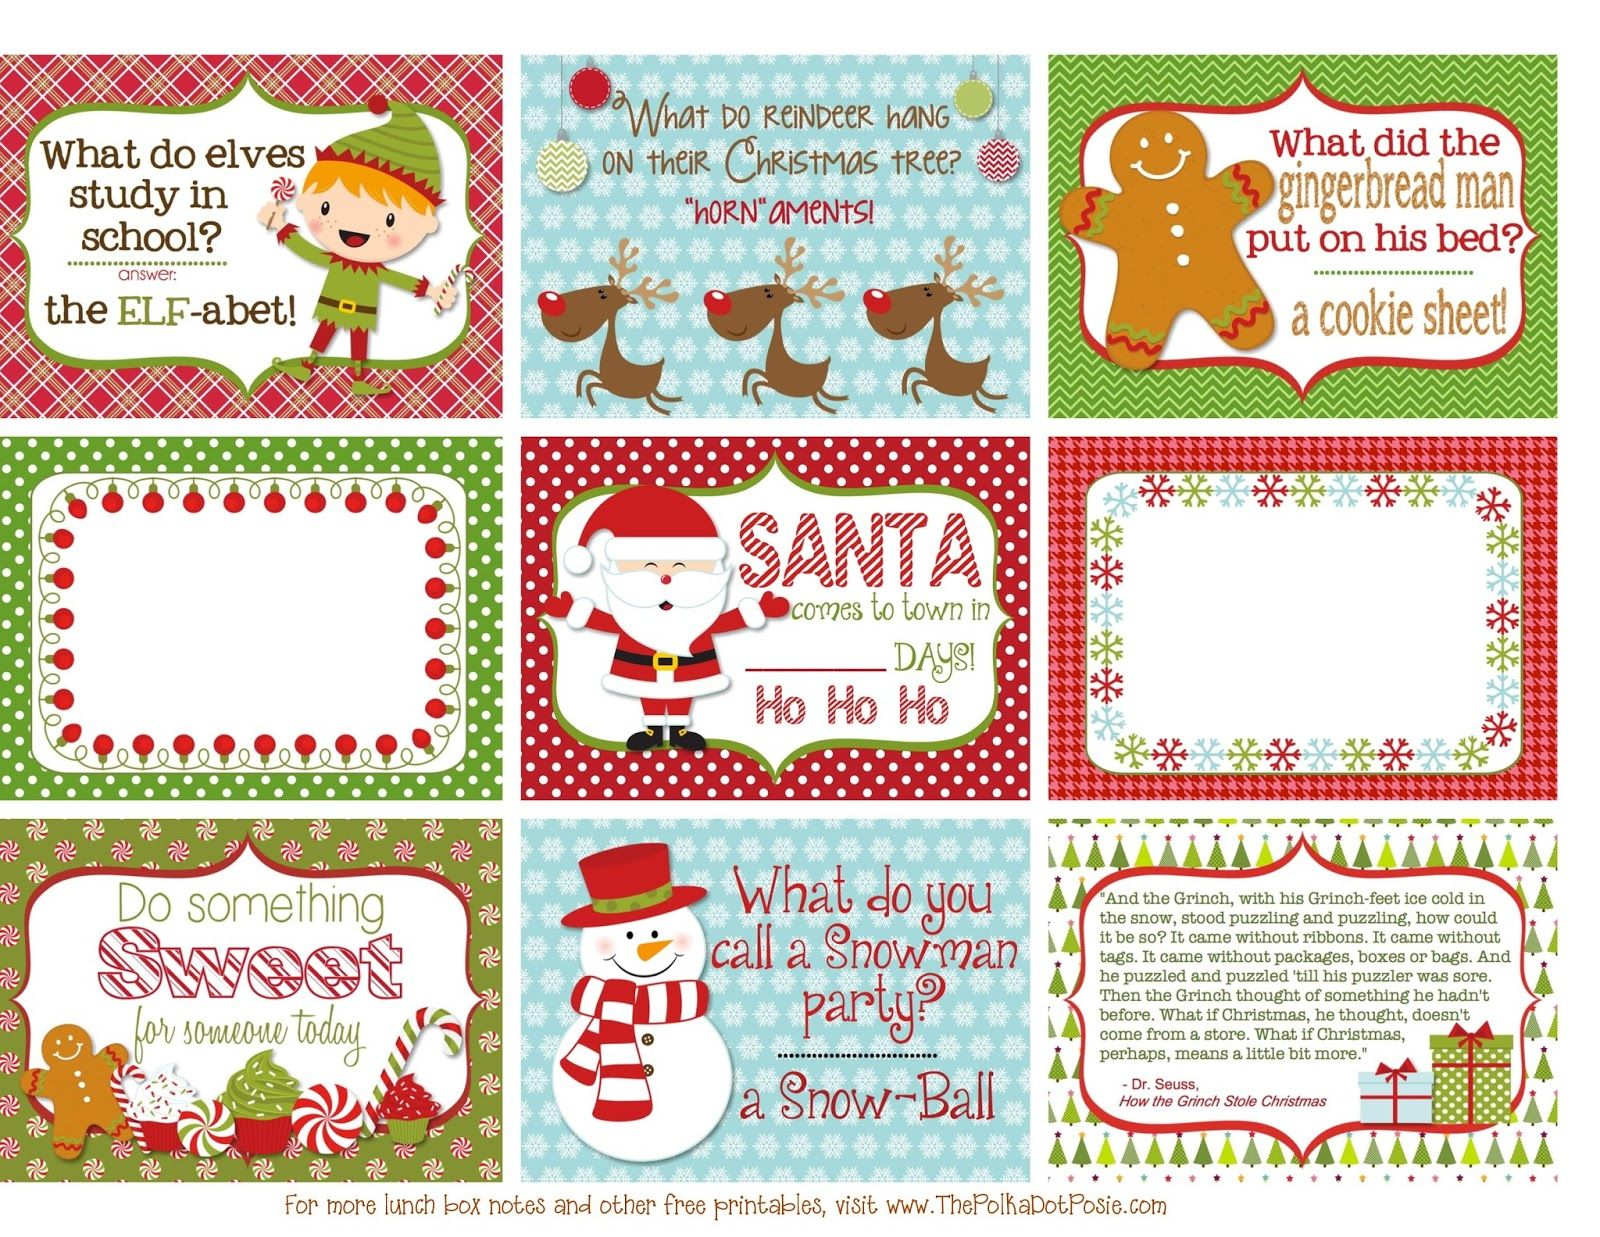 Uncategorized Kid Christmas Jokes free printable christmas lunch box notes from thepolkadotposie when i was a kid the weeks between thanksgiving and were most exciting of whole year remember my mom would sli